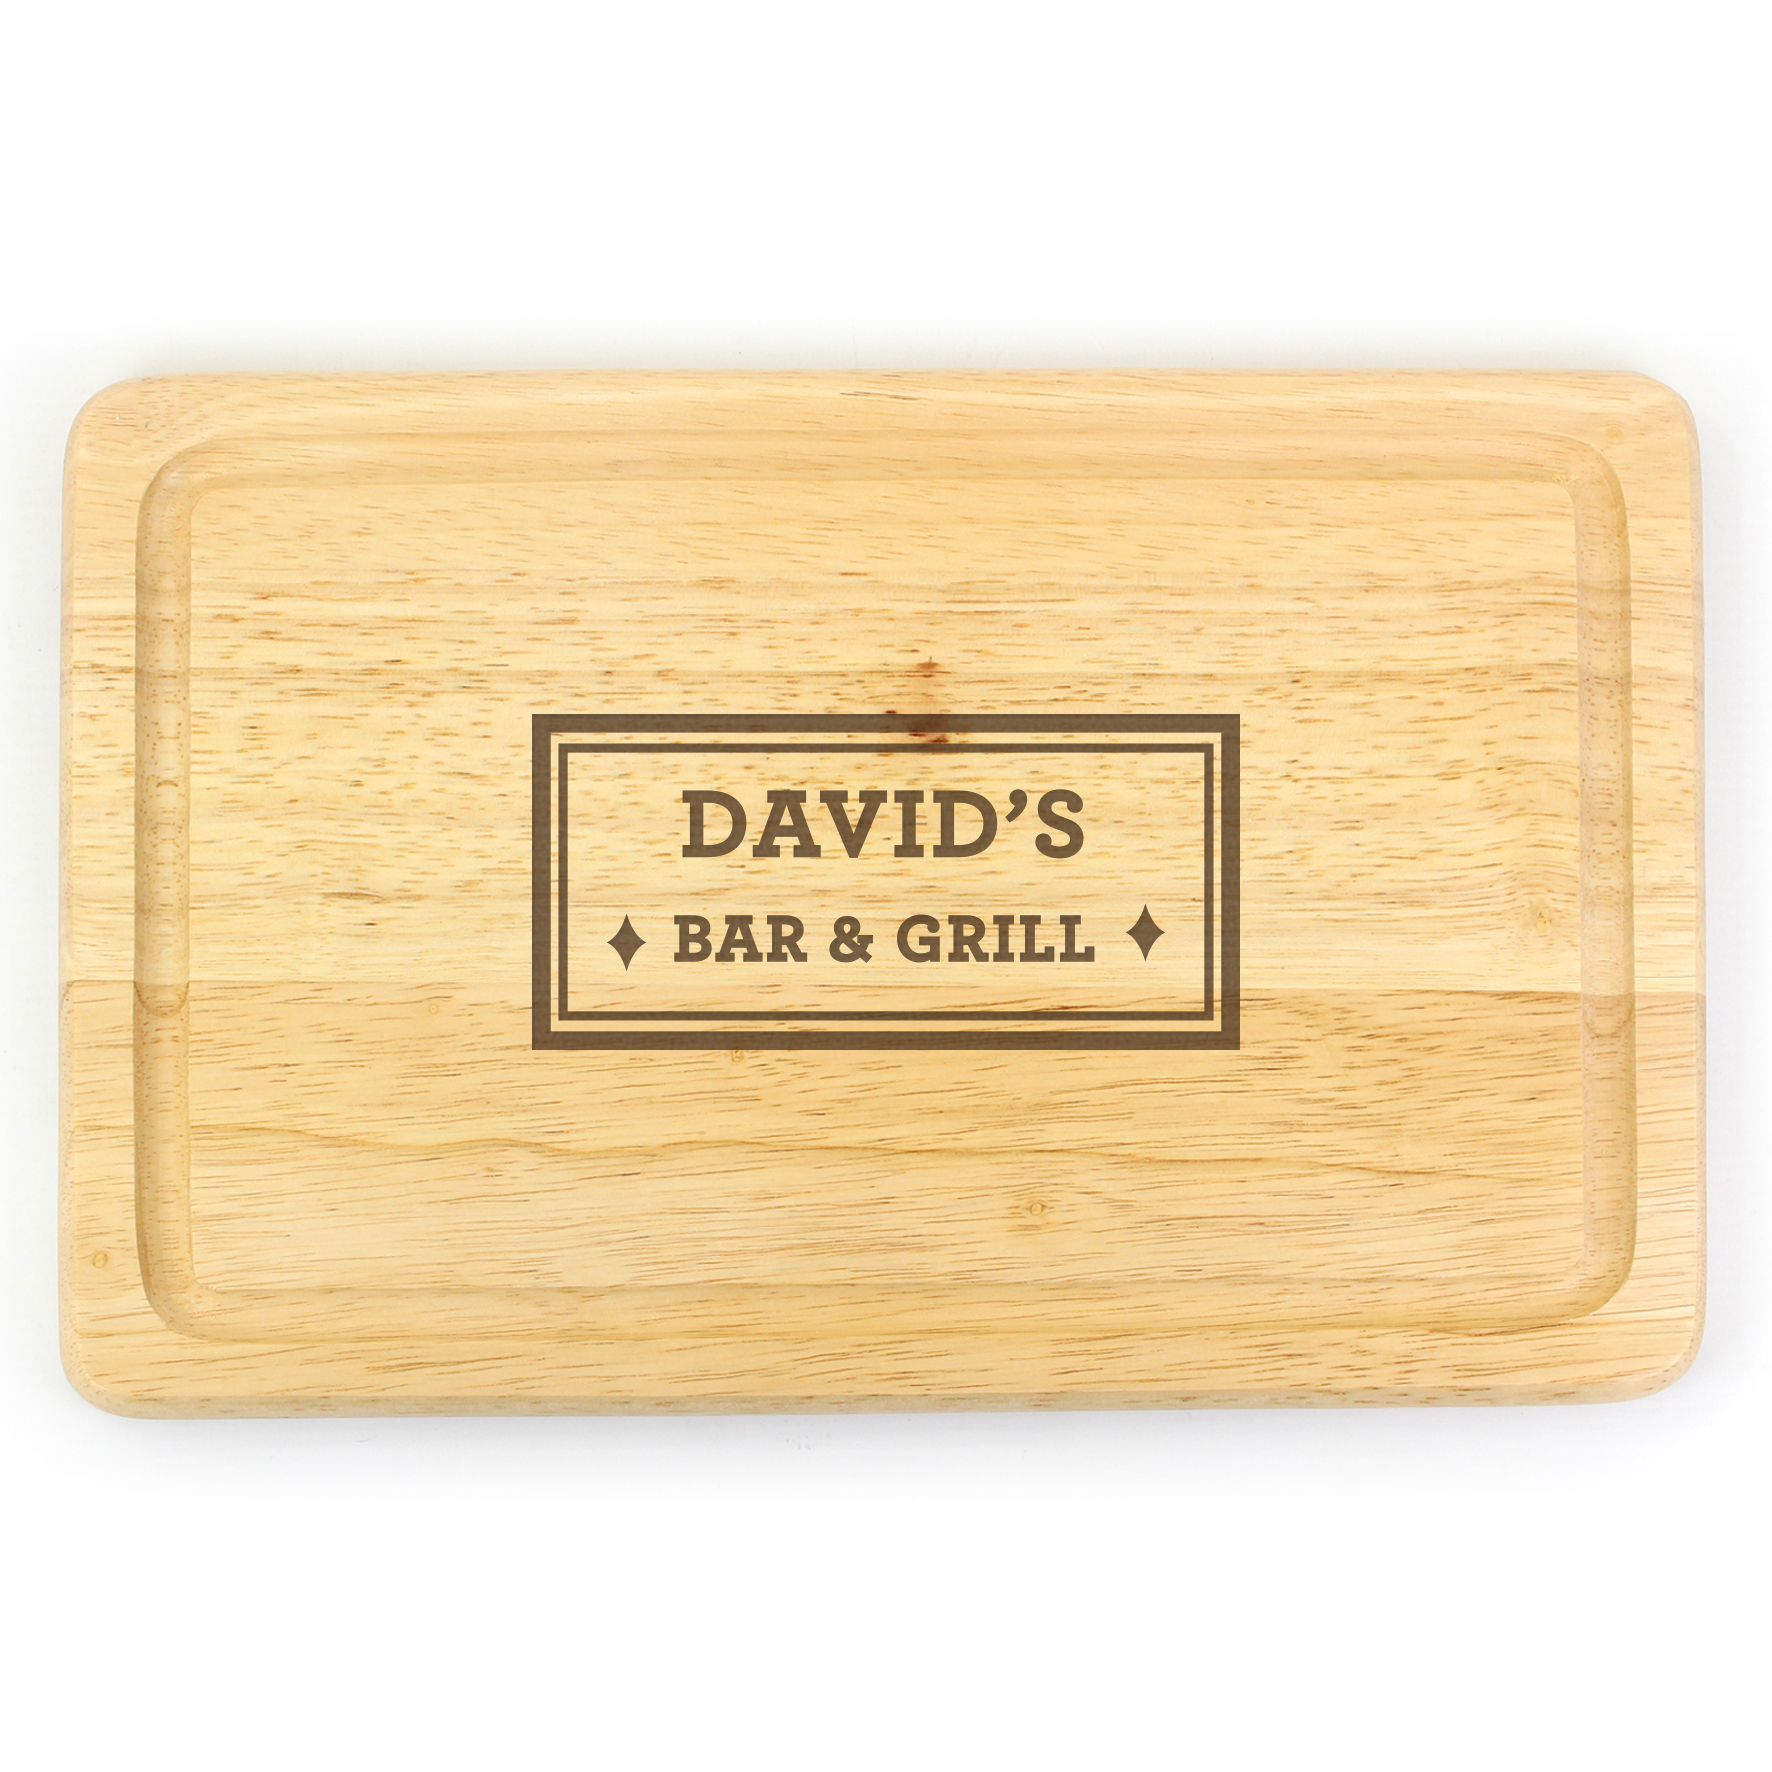 Engraved Bar & Grill Large Chopping Board